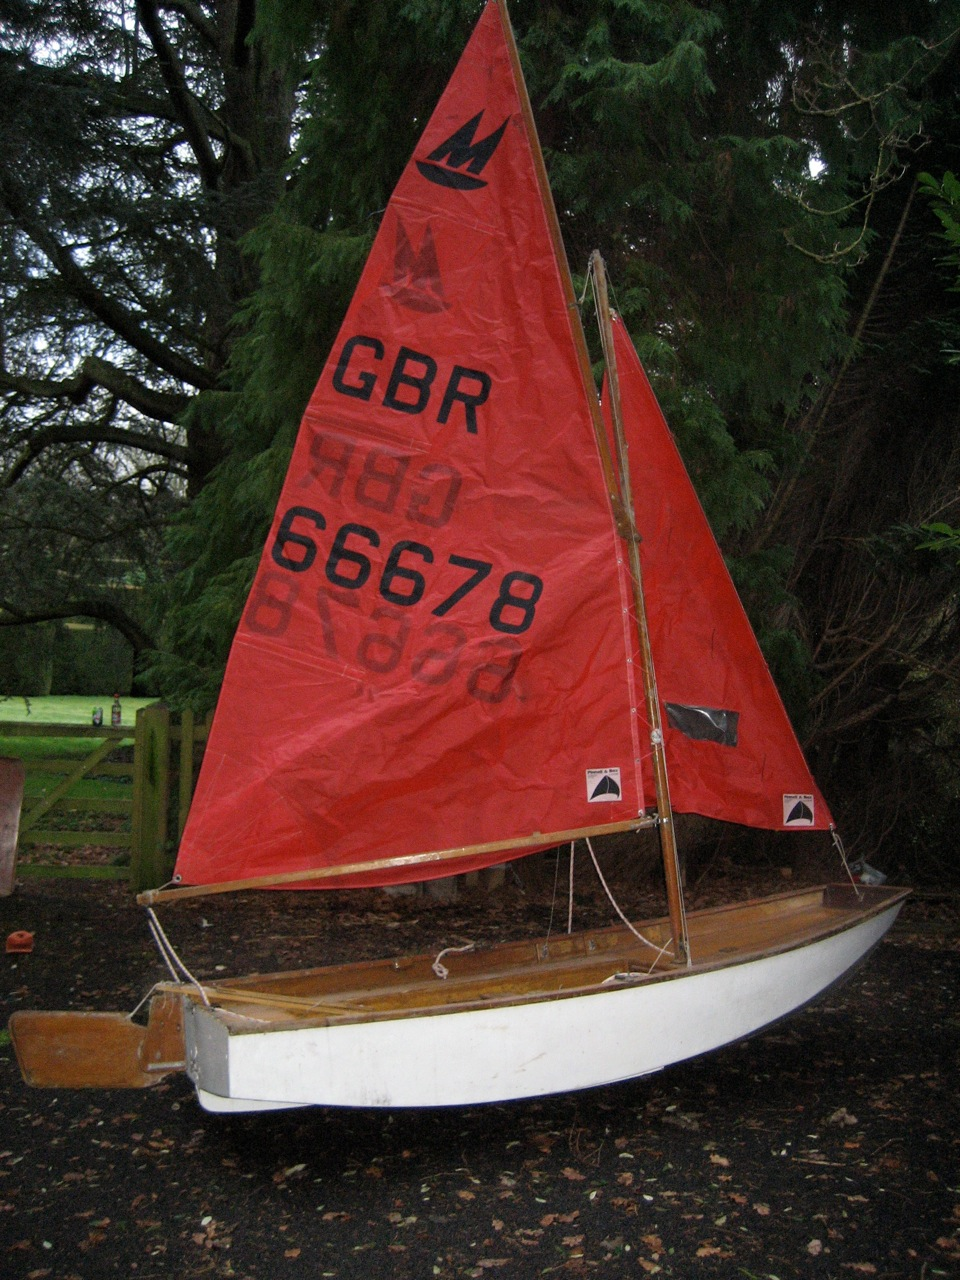 White Mirror dinghy rigged up on a driveway